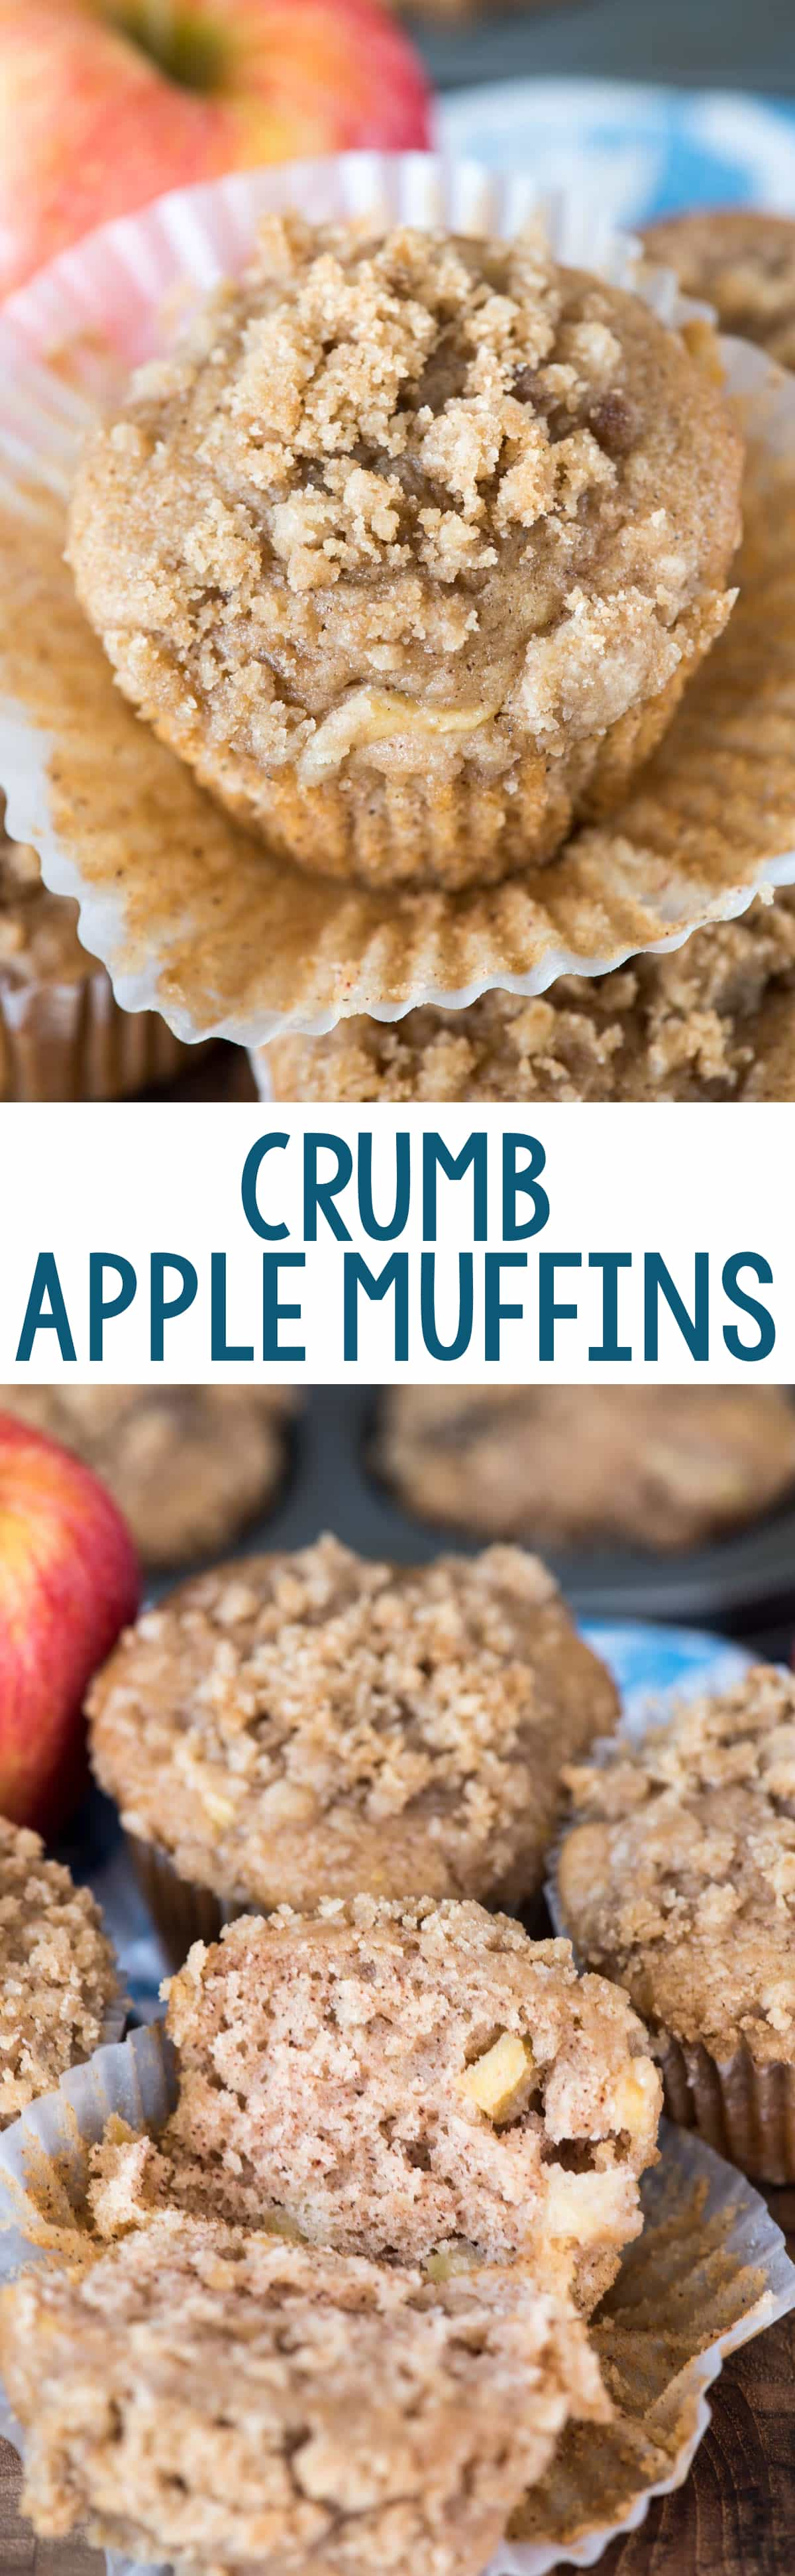 Crumb Apple Muffins - a fluffy cinnamon apple muffin filled with apple ...